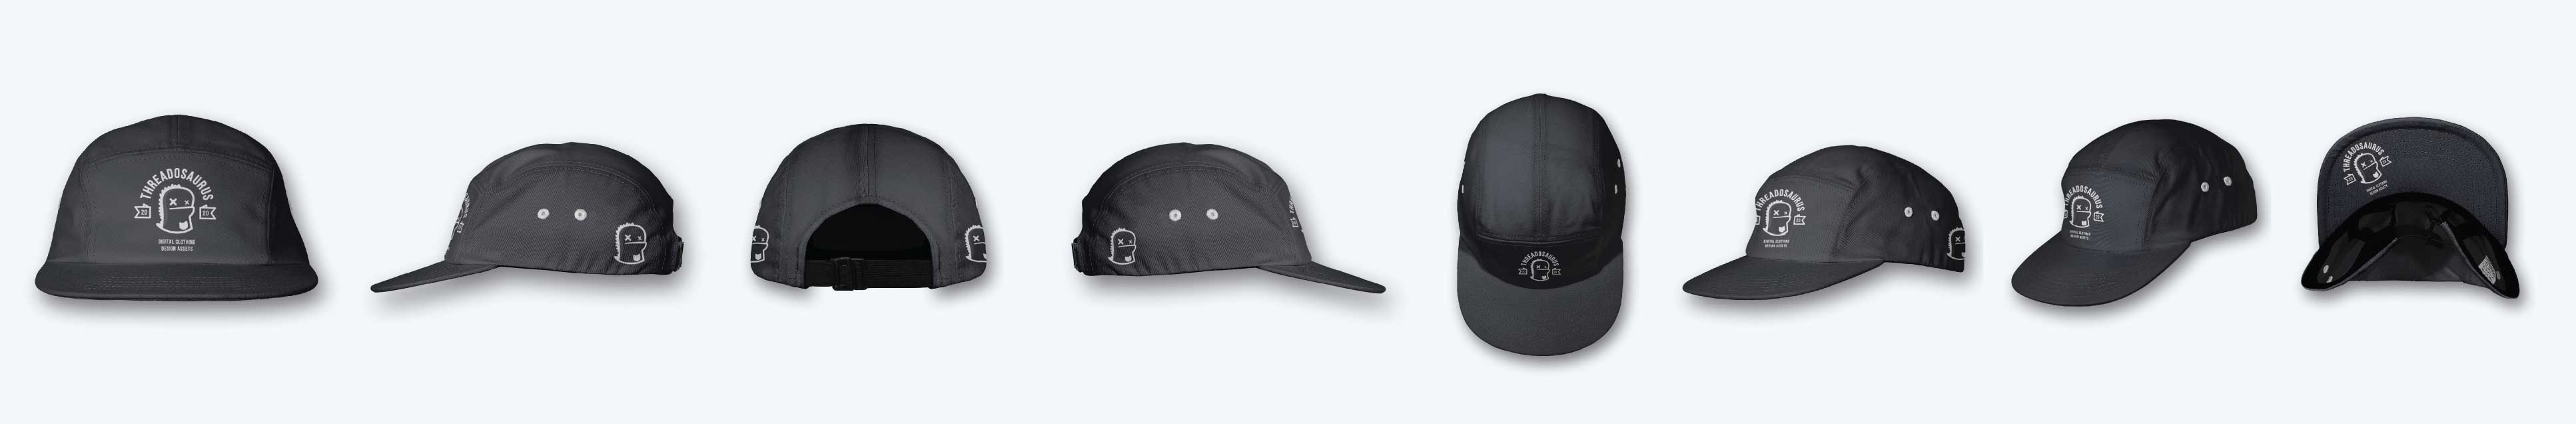 five panel cap mockup template front back side angled